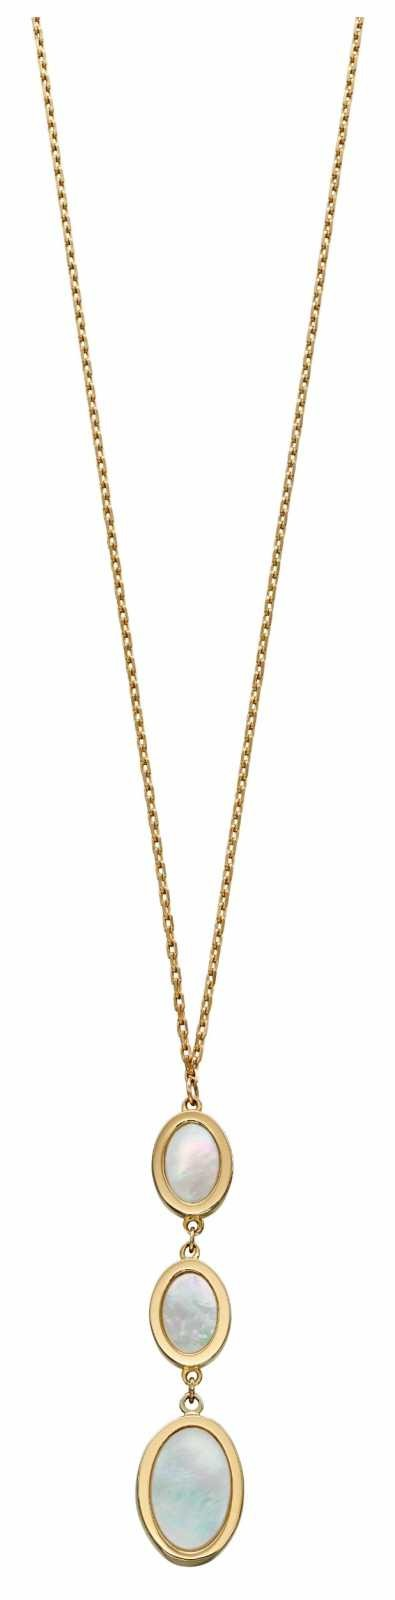 Elements Gold 9k Yellow Gold Grey Mother Of Pearl Oval Chain Necklace GN326W